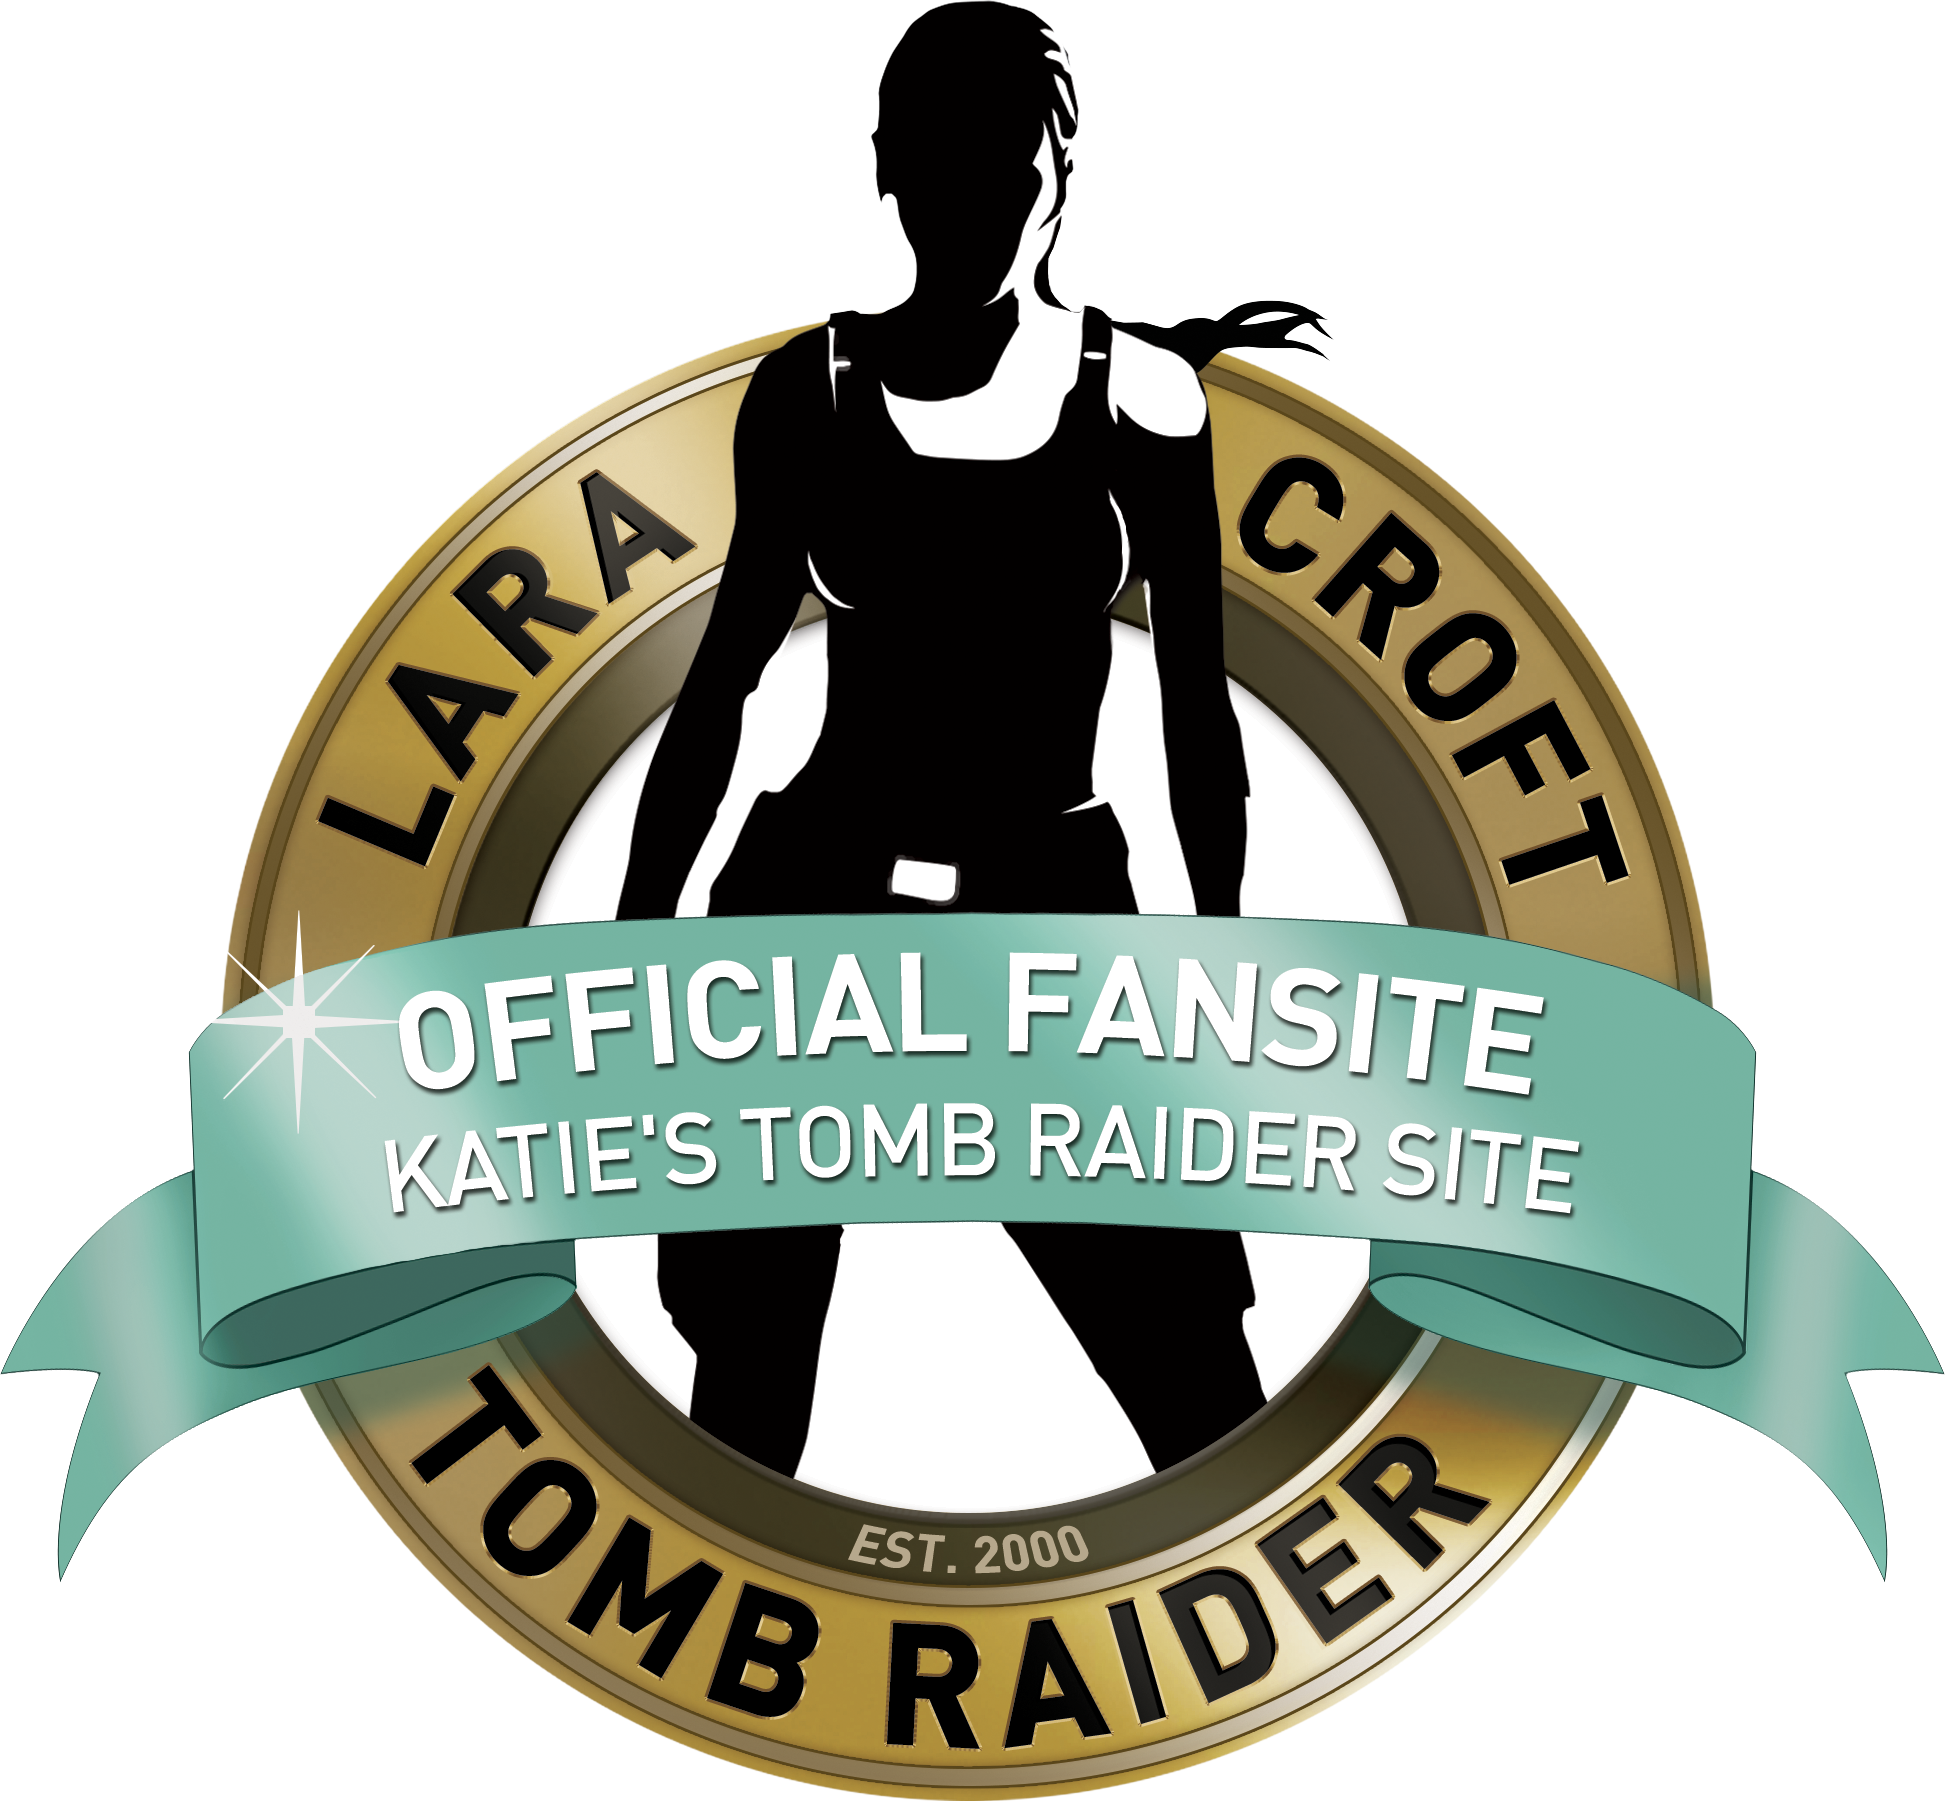 Katie Flemings Tomb Raider Site Your Source for the Best Tomb